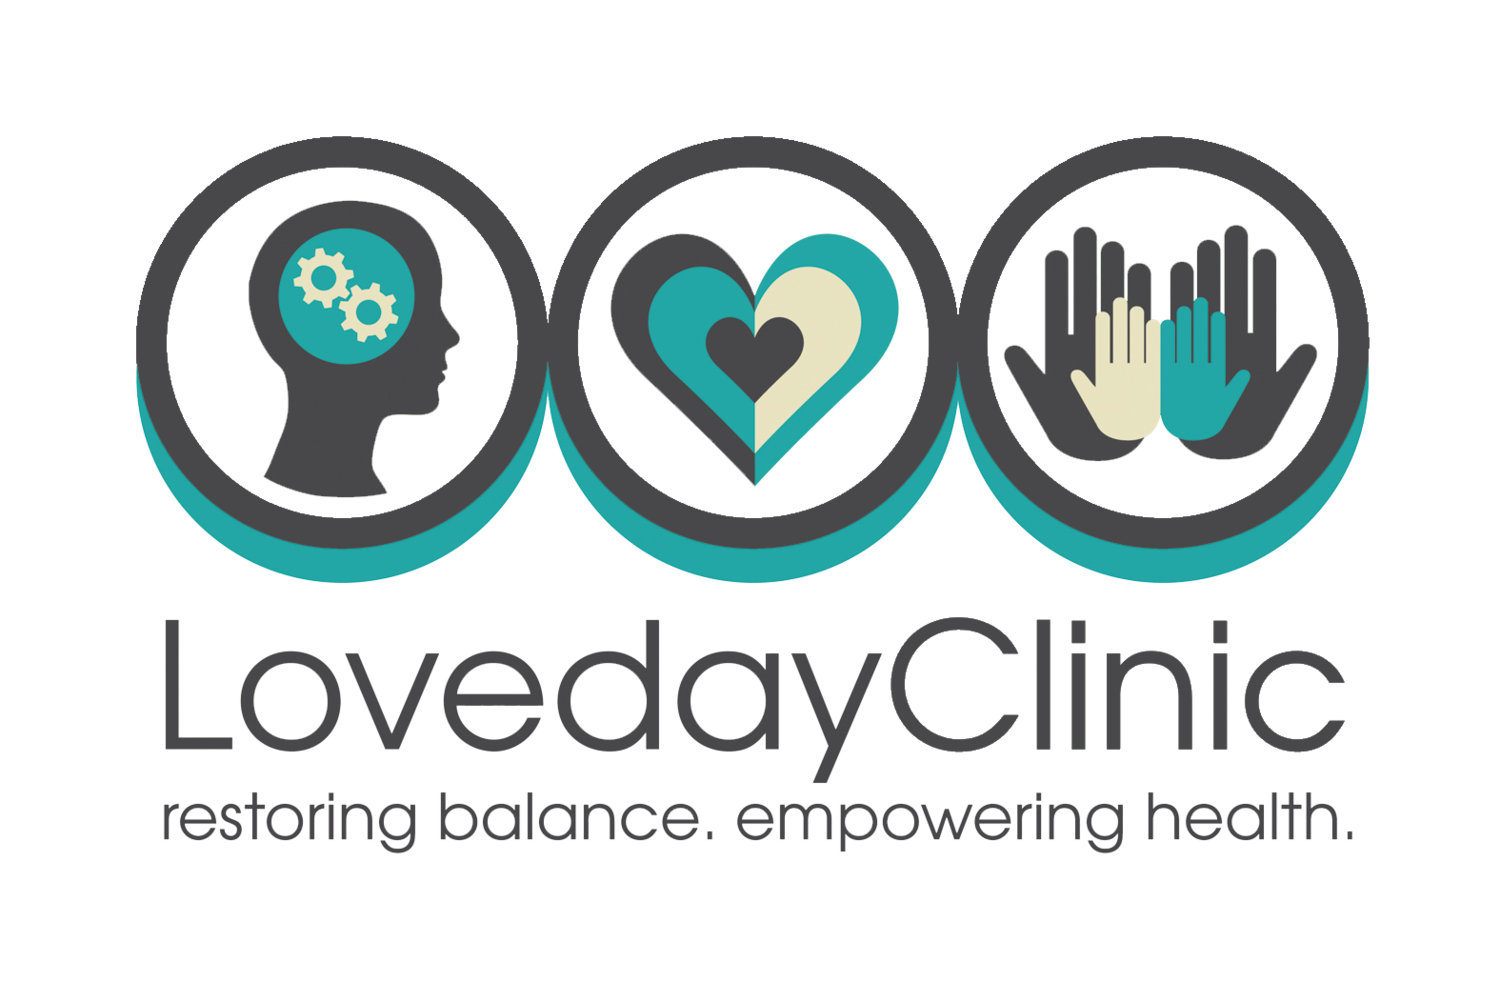 Loveday Clinic